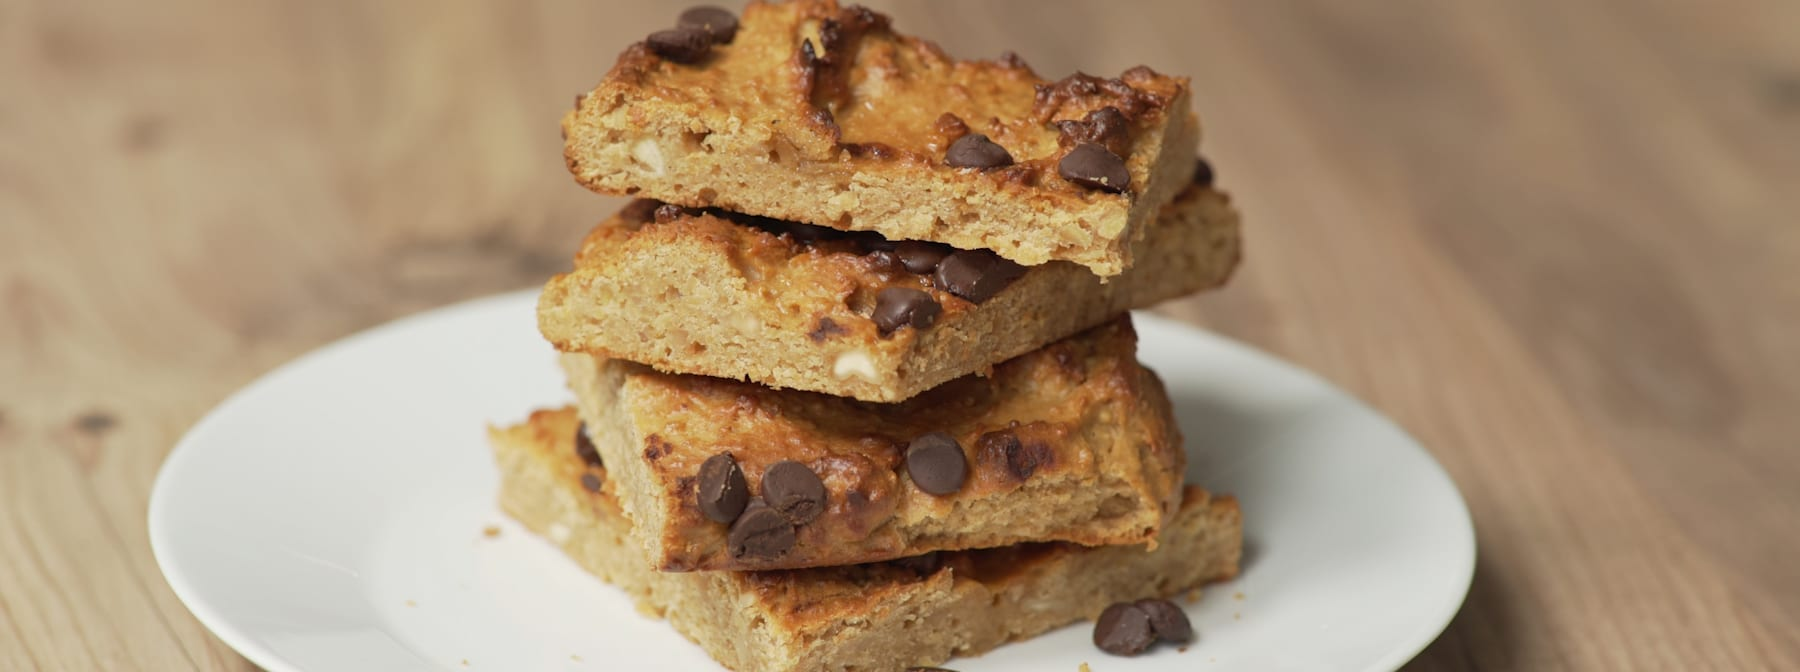 Blondies Vegan | Blondies protéinés à base de pois-chiches